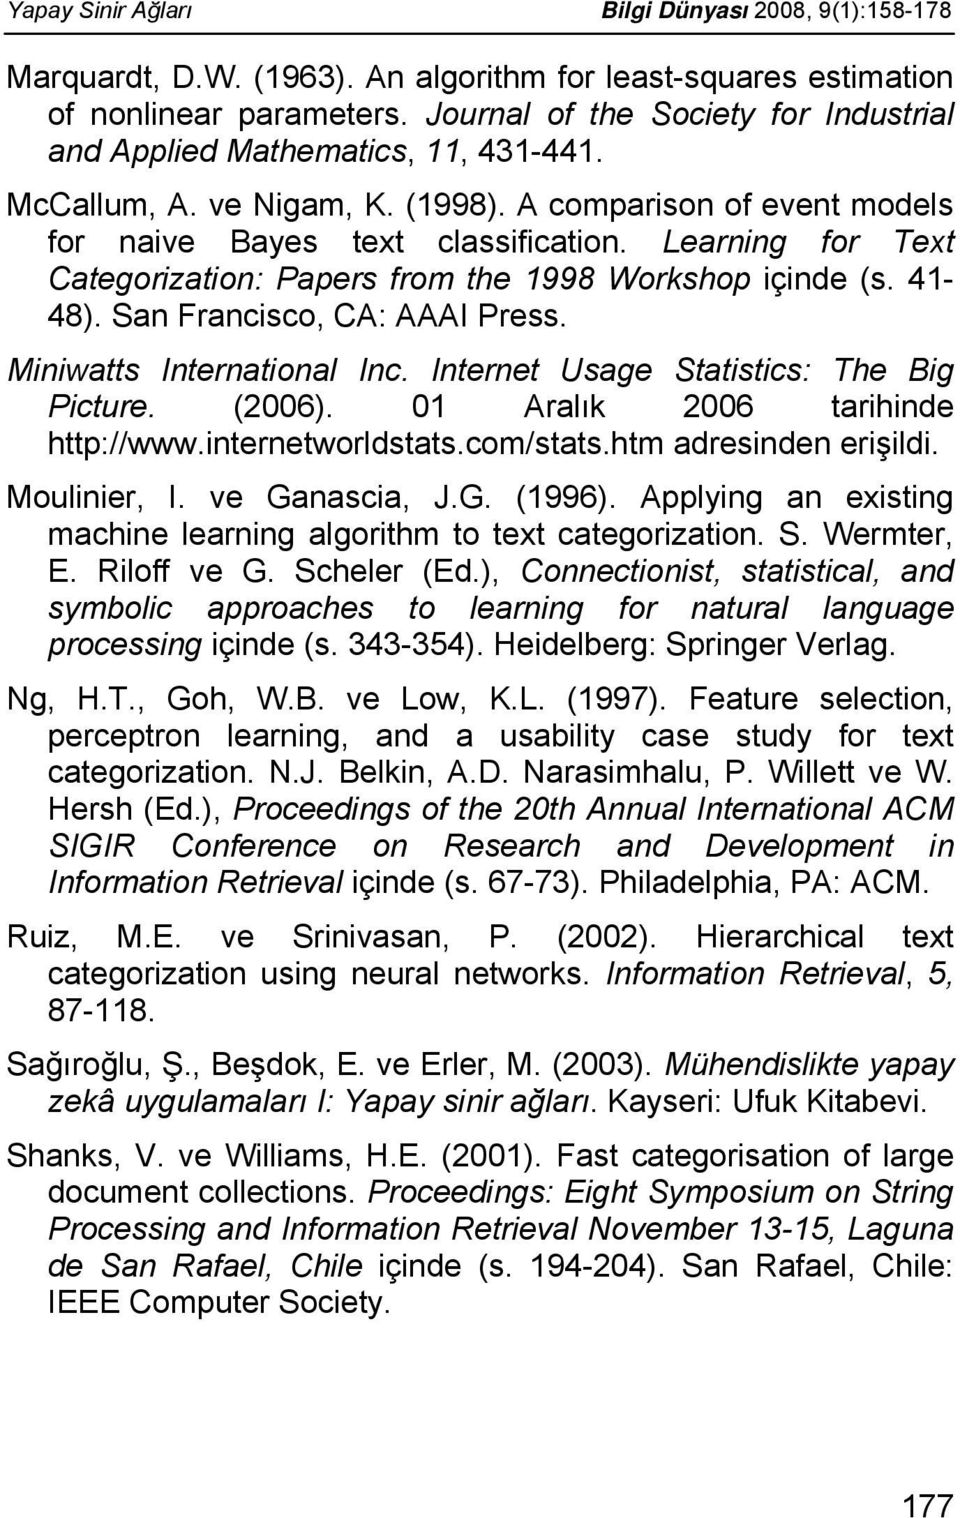 Learning for Text Categorization: Papers from the 1998 Workshop içinde (s. 41-48). San Francisco, CA: AAAI Press. Miniwatts International Inc. Internet Usage Statistics: The Big Picture. (2006).